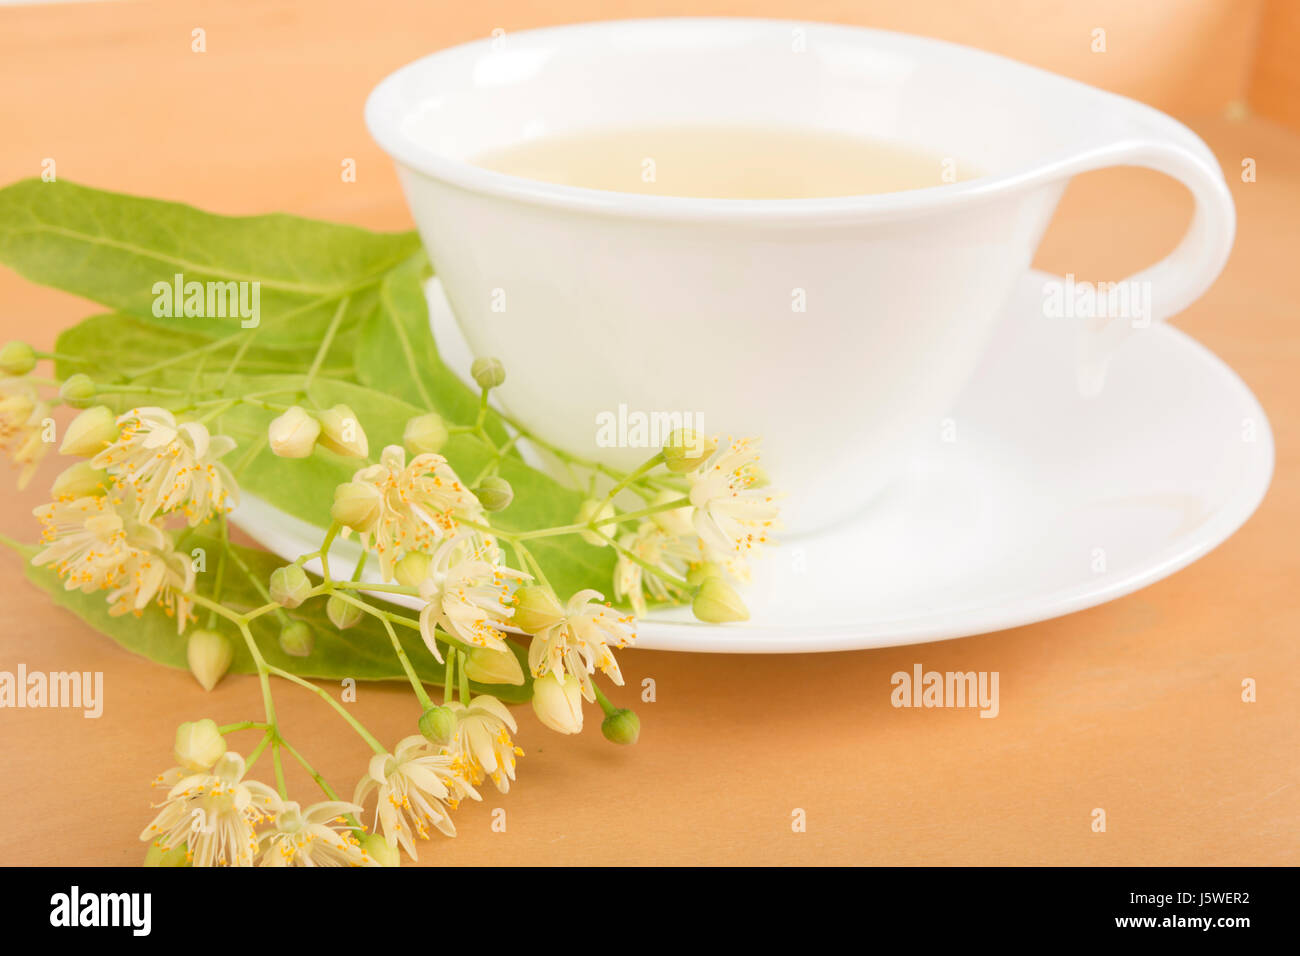 Studio shot of hot linden tea in a fine white porcelain cup on a wooden tabletop. Large-leaved Linden, Tilia platyphyllos. Stock Photo